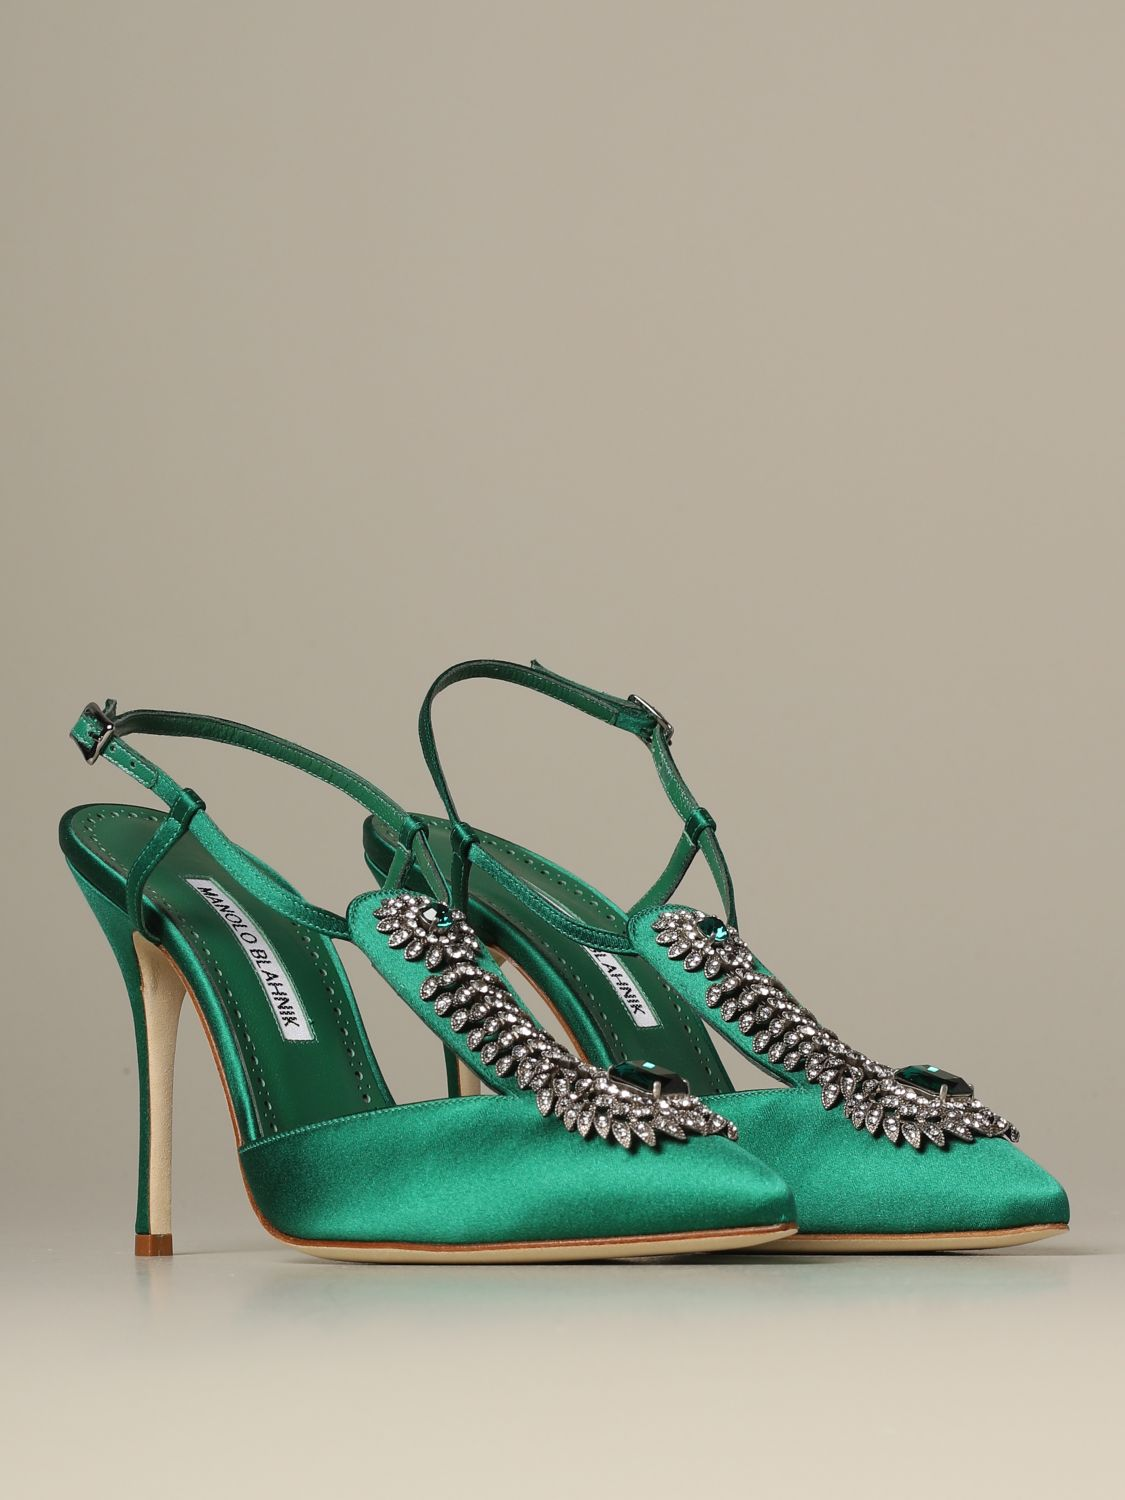 Pumps Manolo Blahnik: Shoes women Manolo Blahnik emerald 2